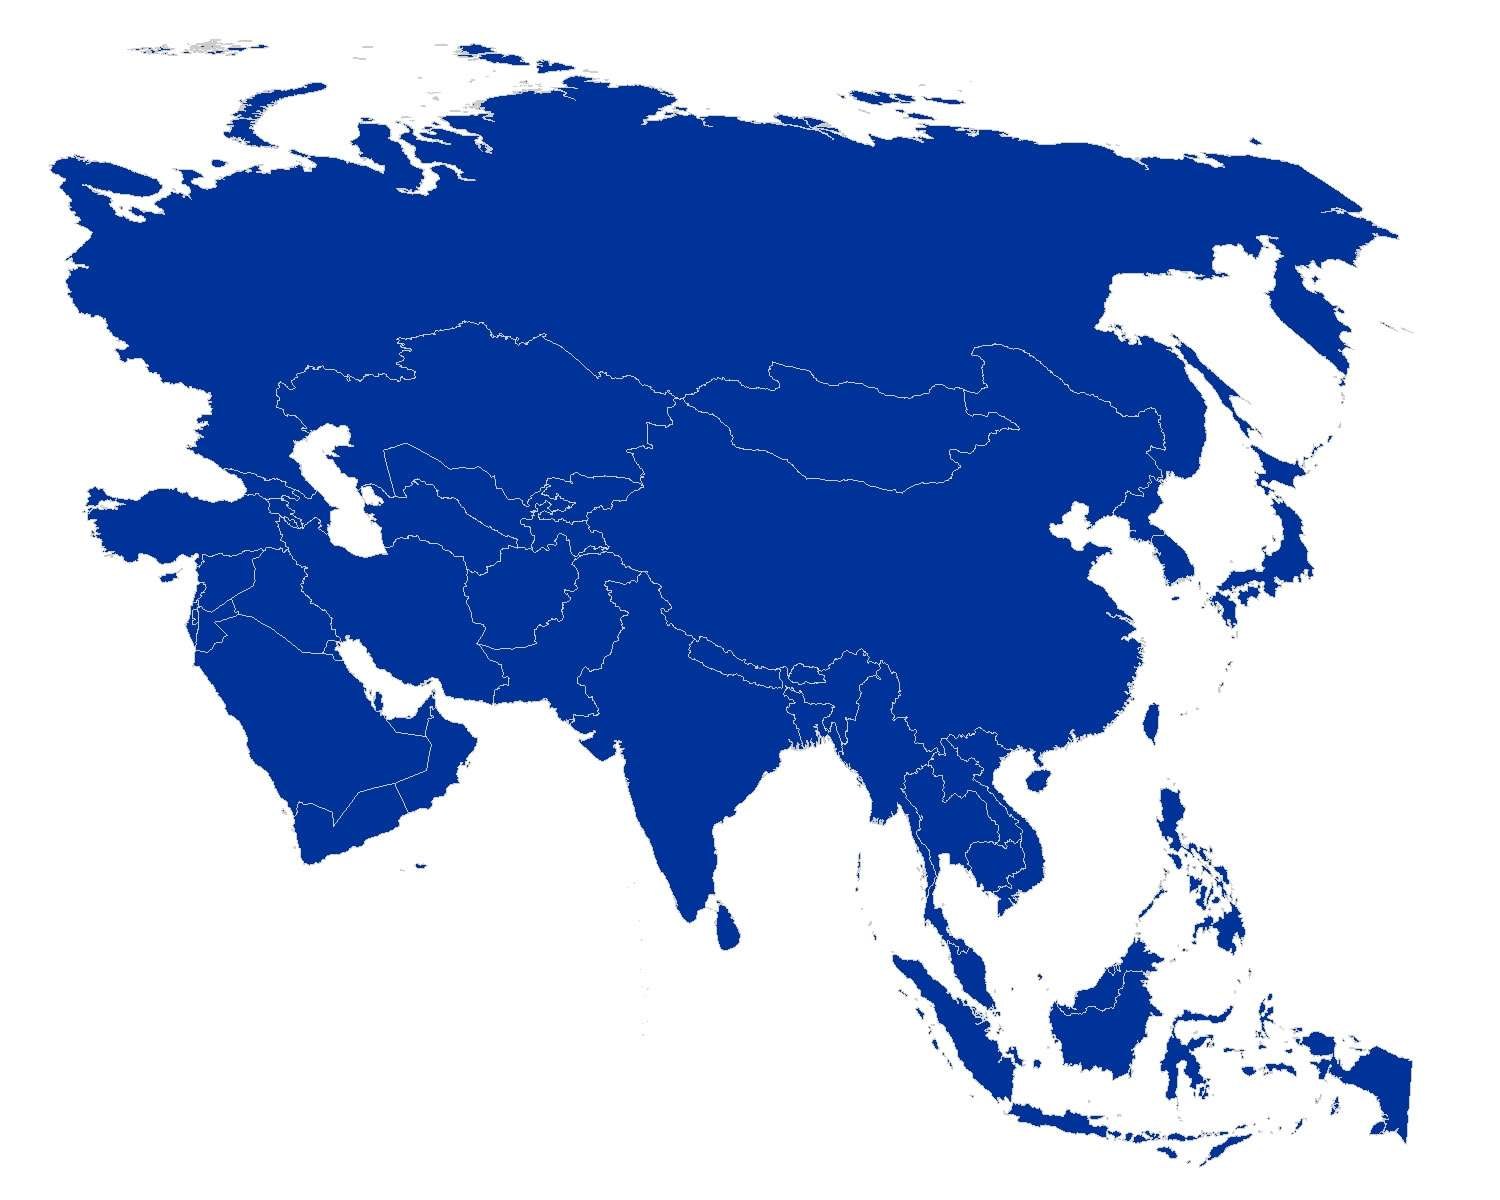 Asia_map_blank